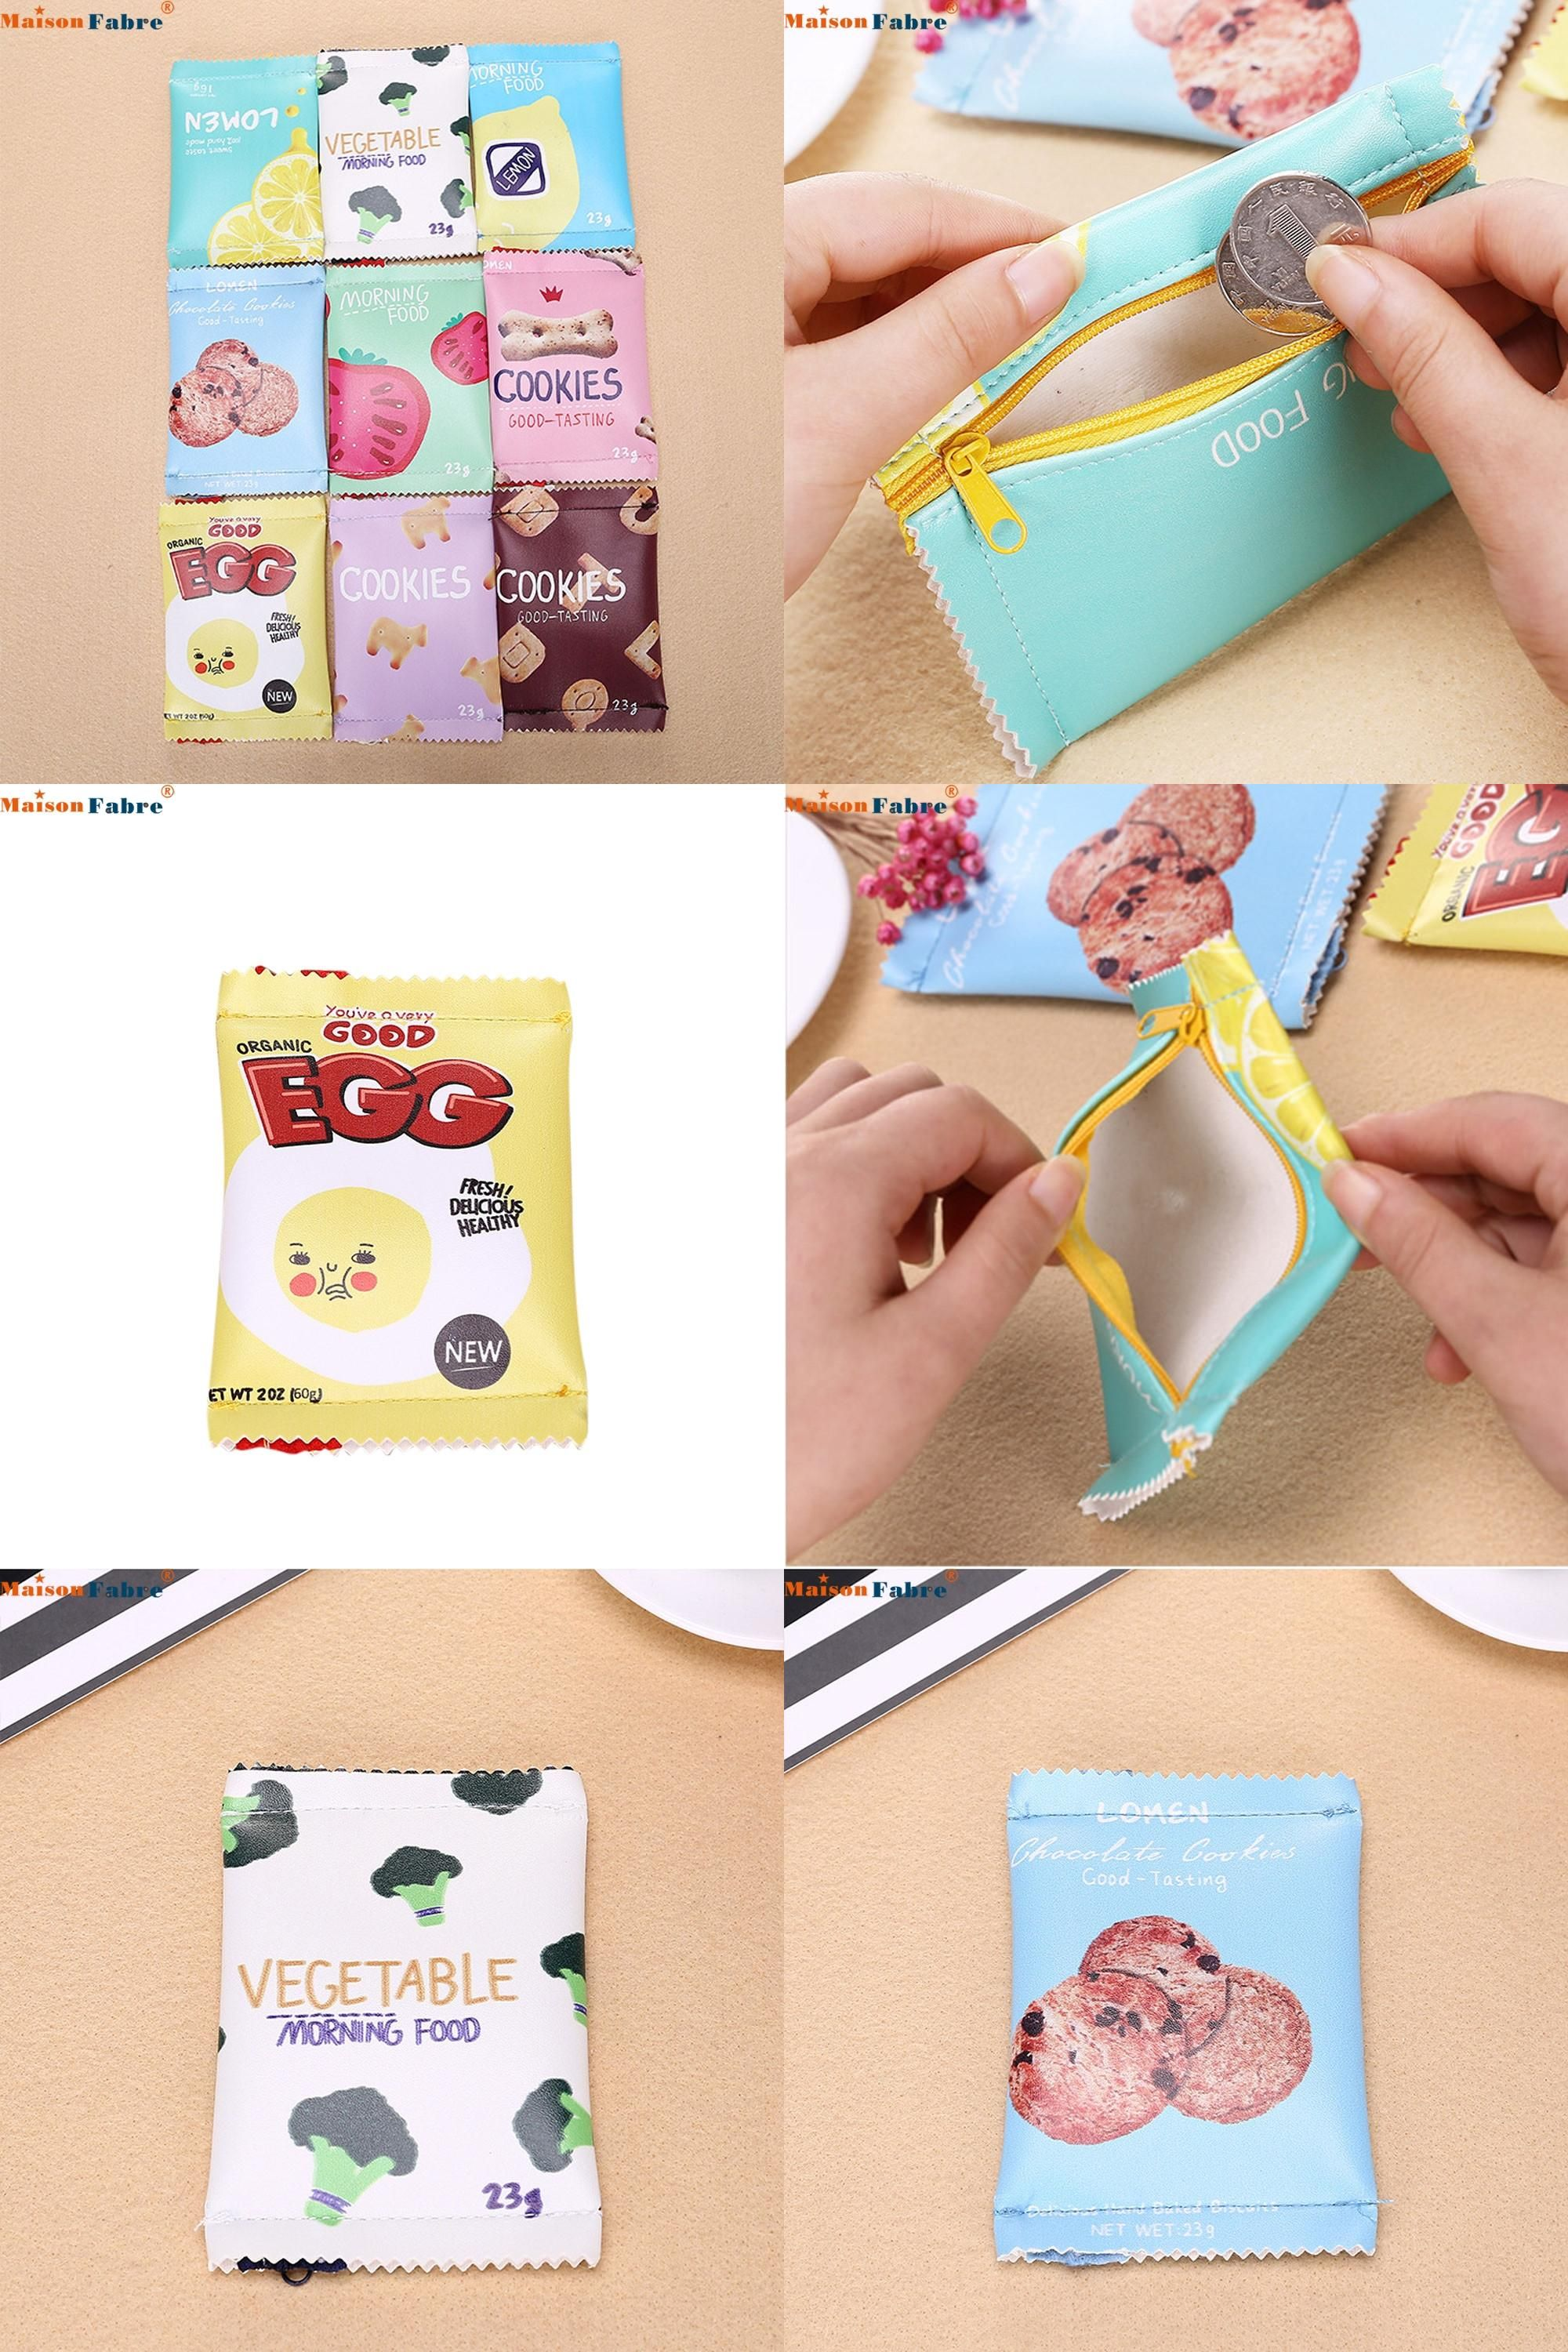 [Visit to Buy] Hot selling coin pursecute wallet women Girls Cute Fashion Snacks Coin Purse Wallet Bag Change Pouch Key Holder drop shipping #Advertisement